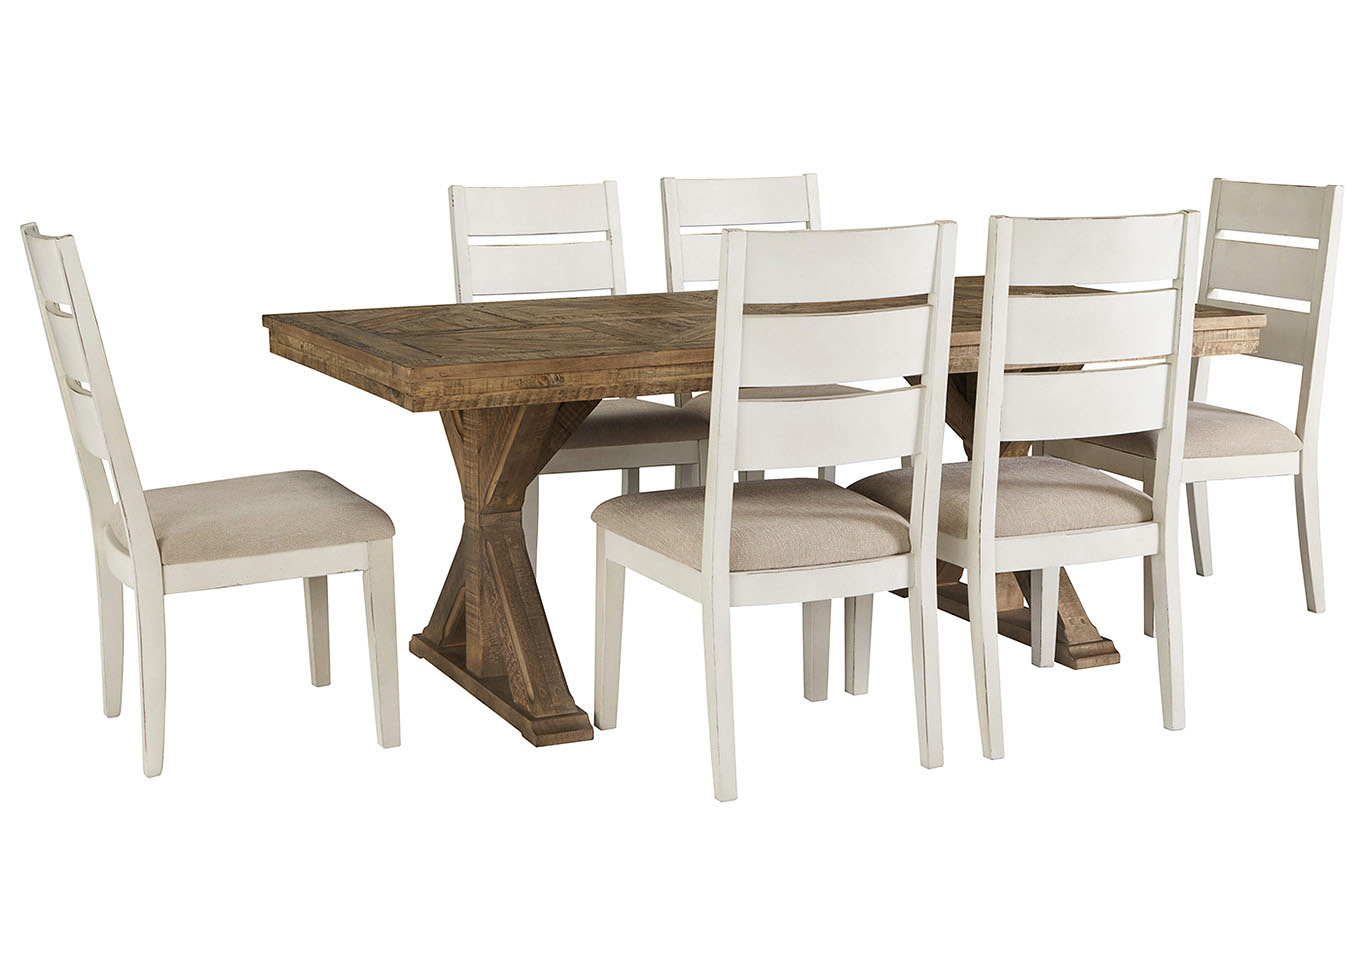 Grindleburg Rectangular Dining Table w/6 Side Chairs